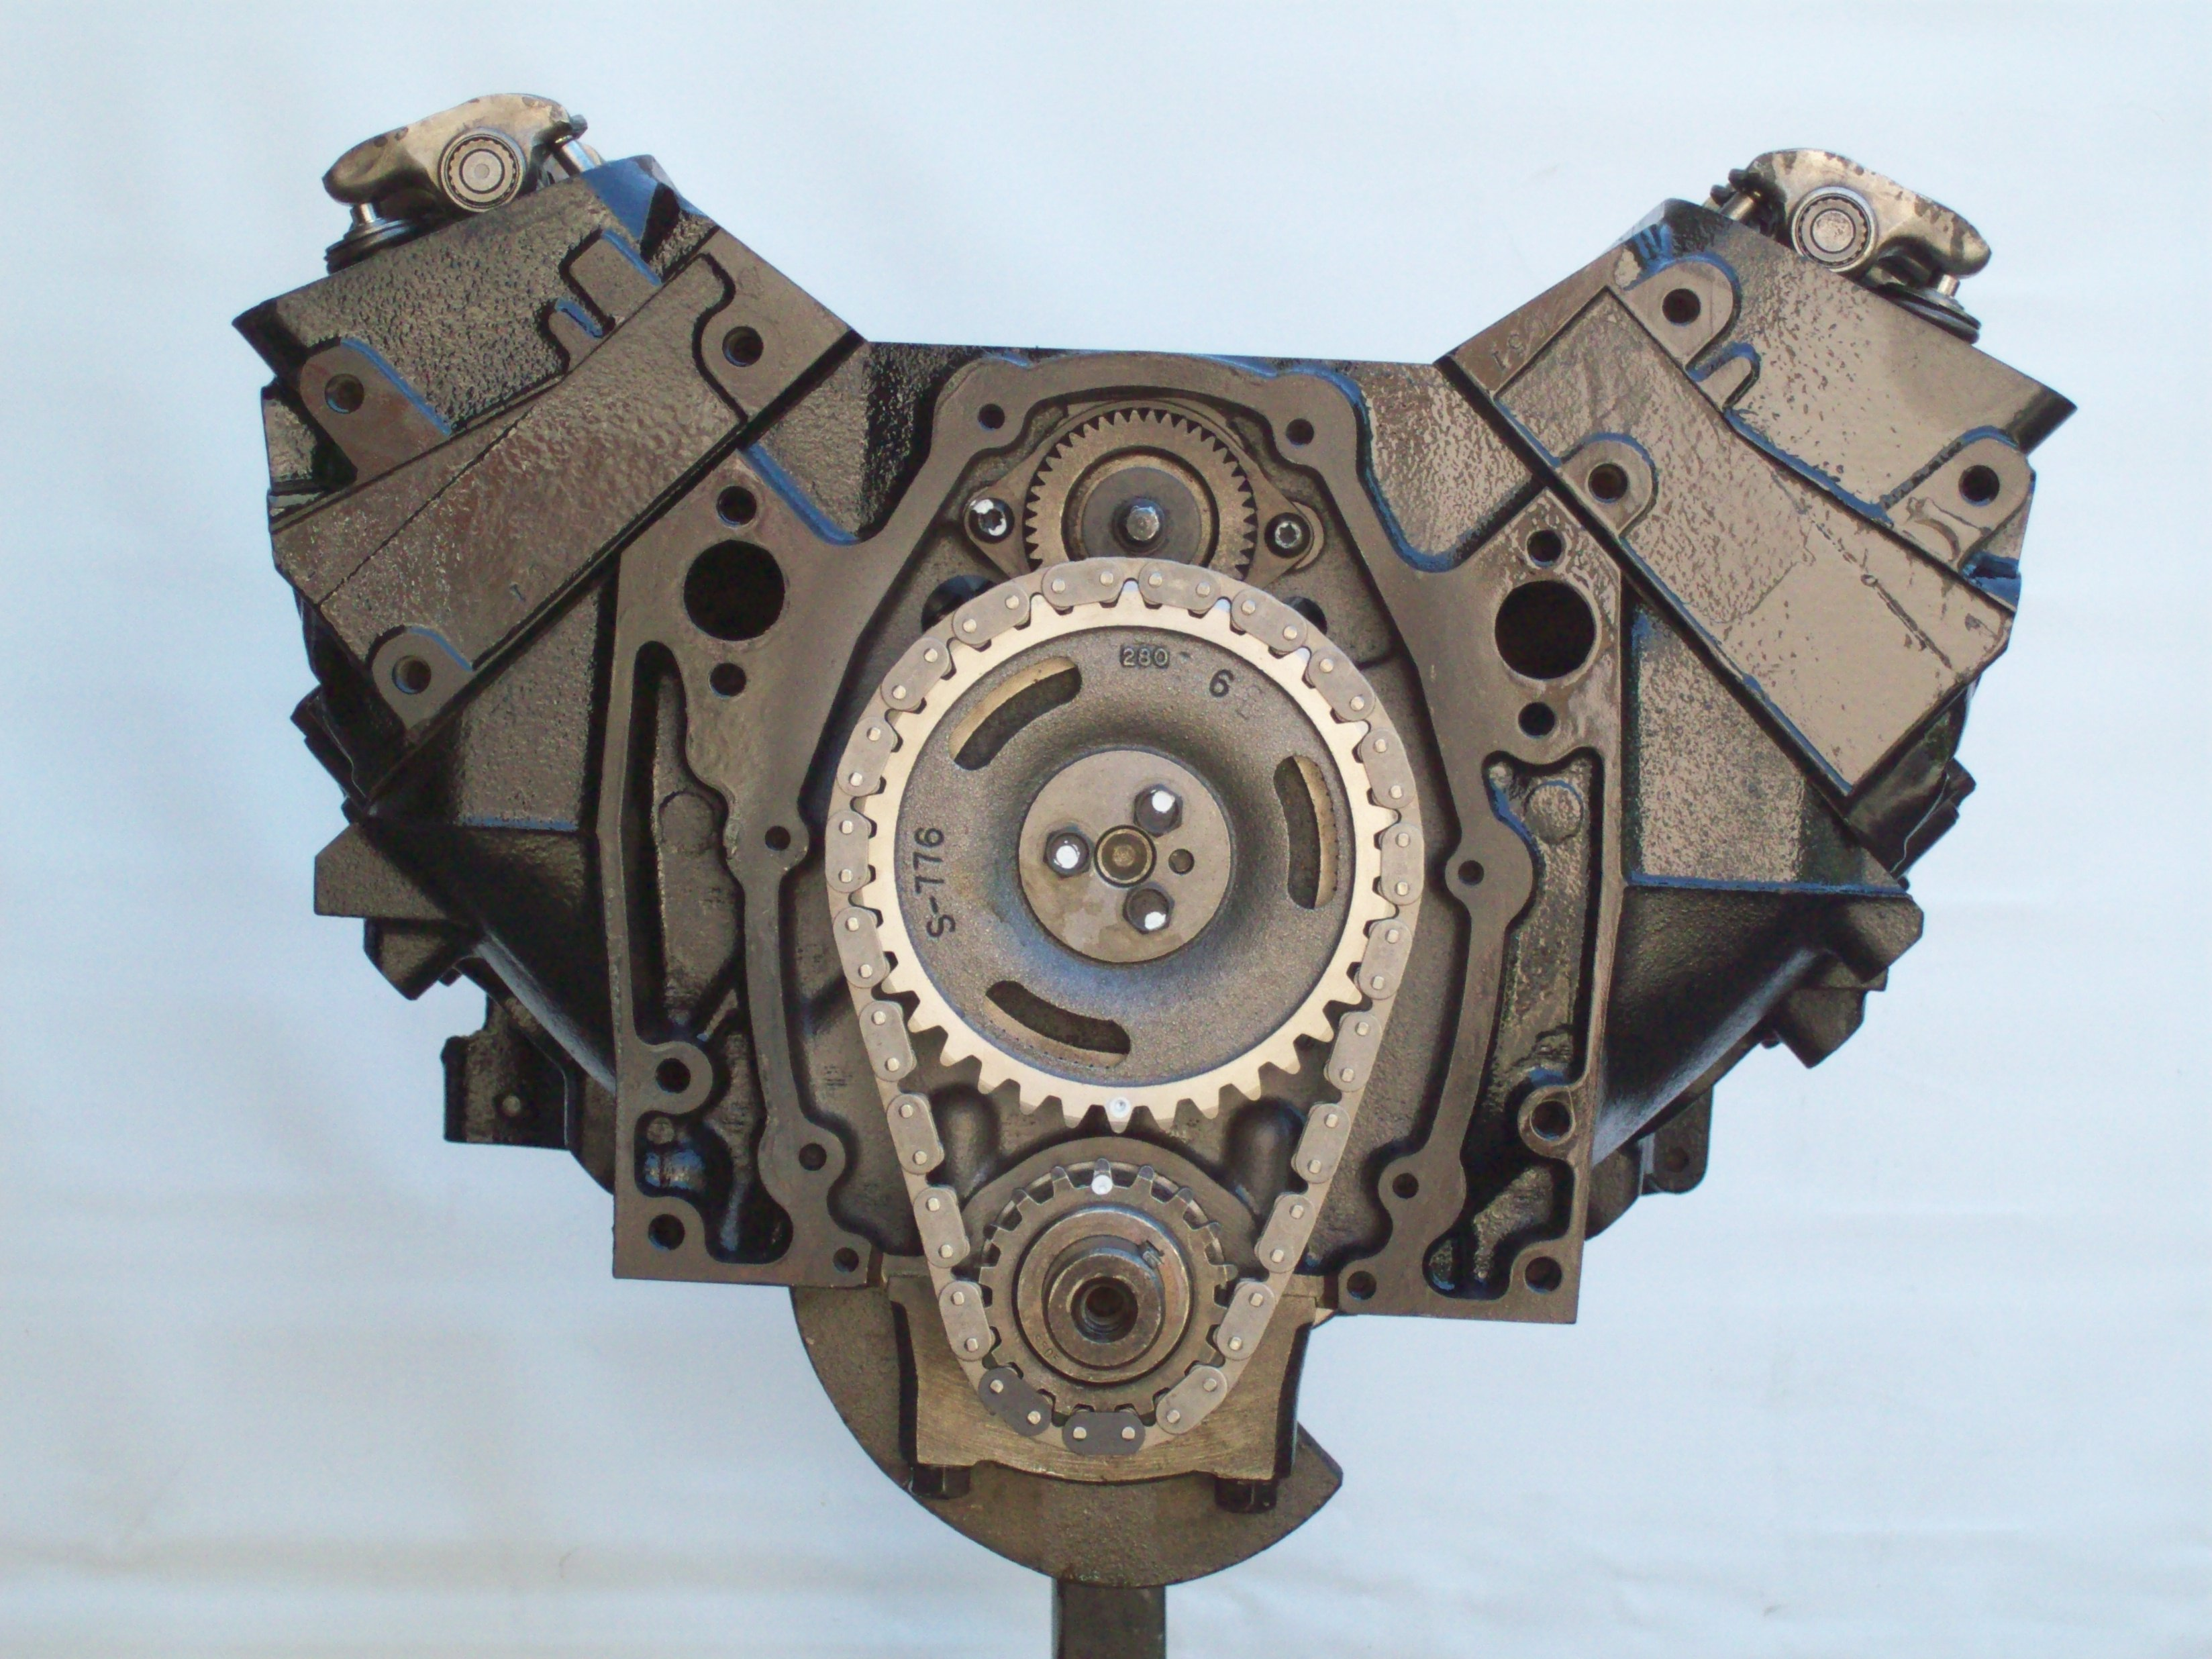 4_3 Vortec Timing Marks http://remanufactured.com/Inboard_Marine_Engines.htm